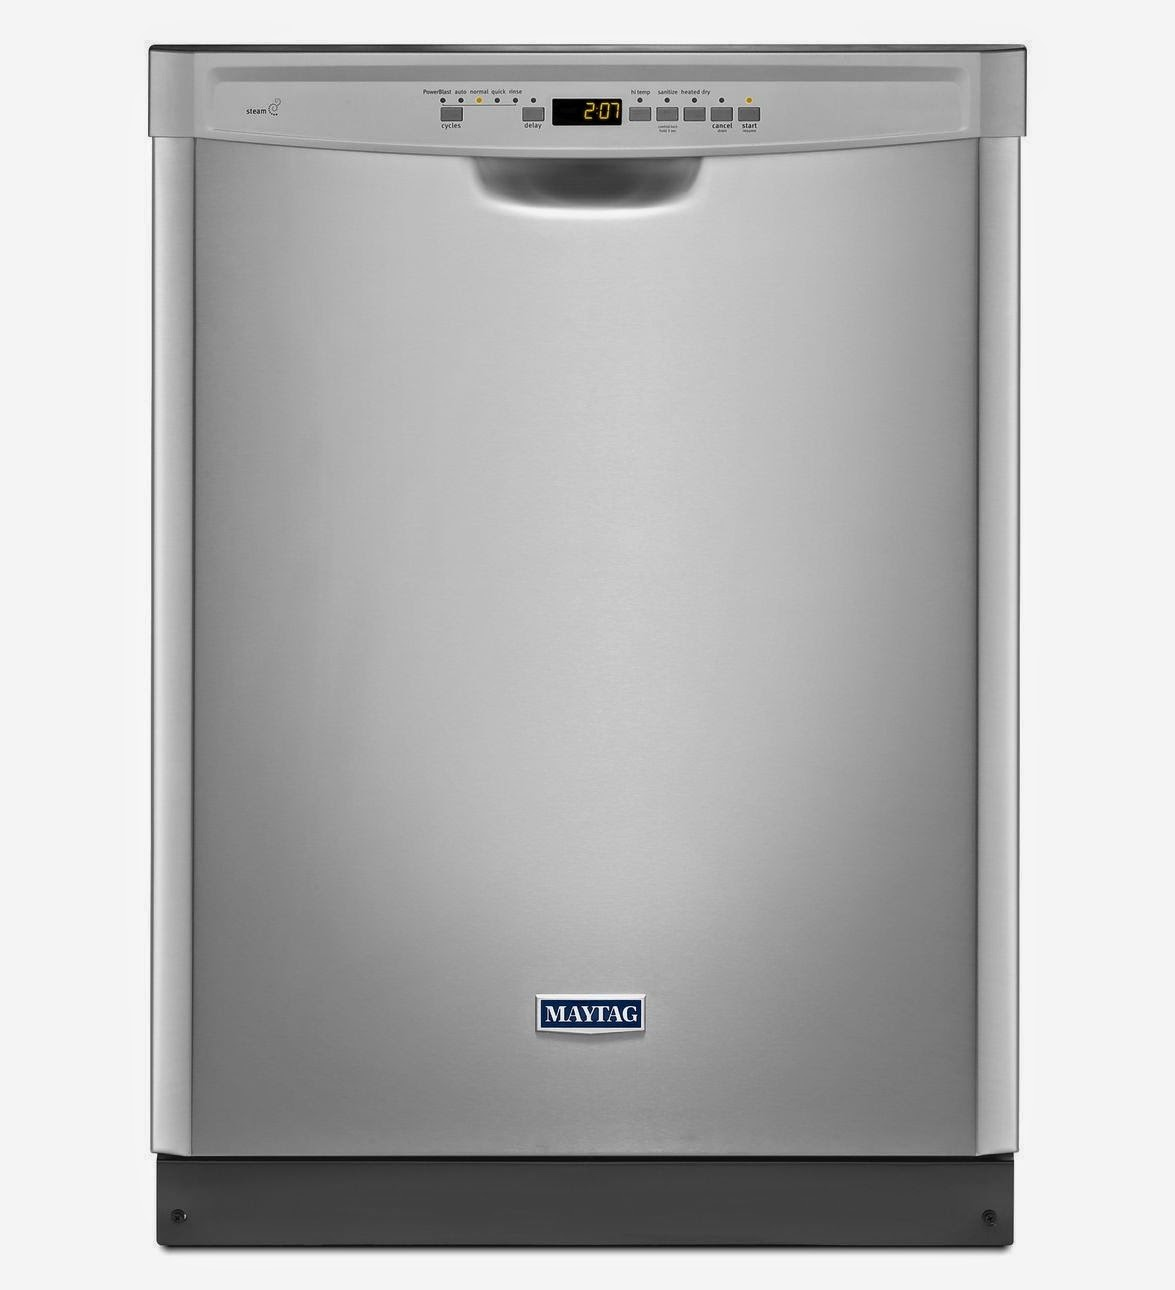 Choose Lowe's as Your Top Online Appliance Store Find the Best Major Appliances for Major Everyday Convenience. Shop Lowe's online store for one of the largest selections of major appliances in Canada.